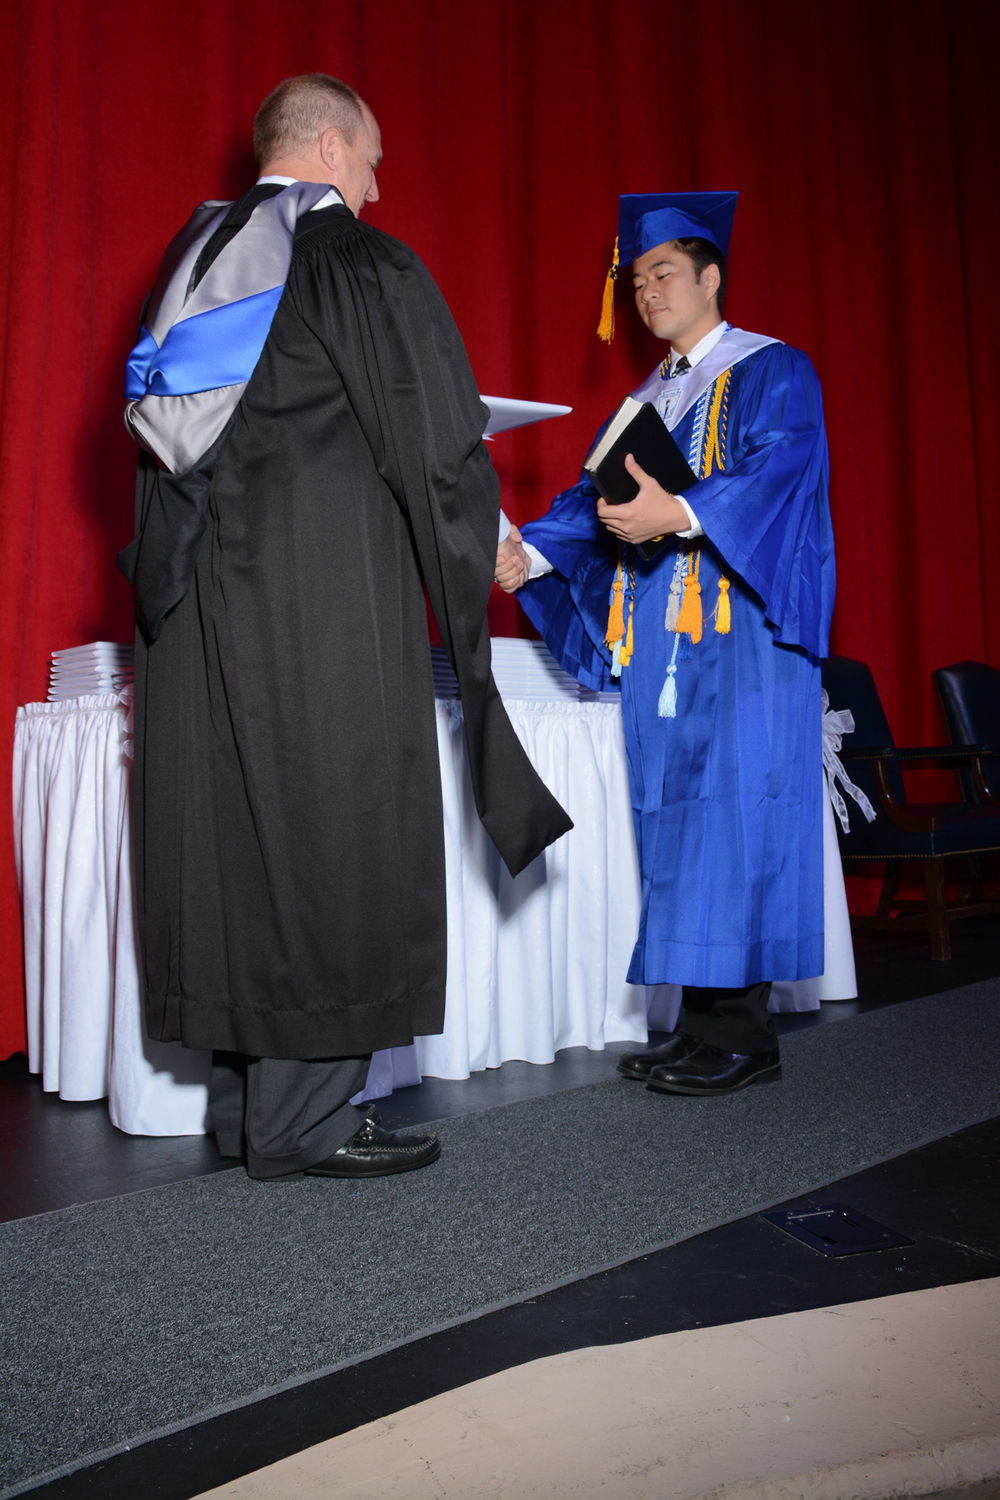 May16 GraduationPhotos07.jpg